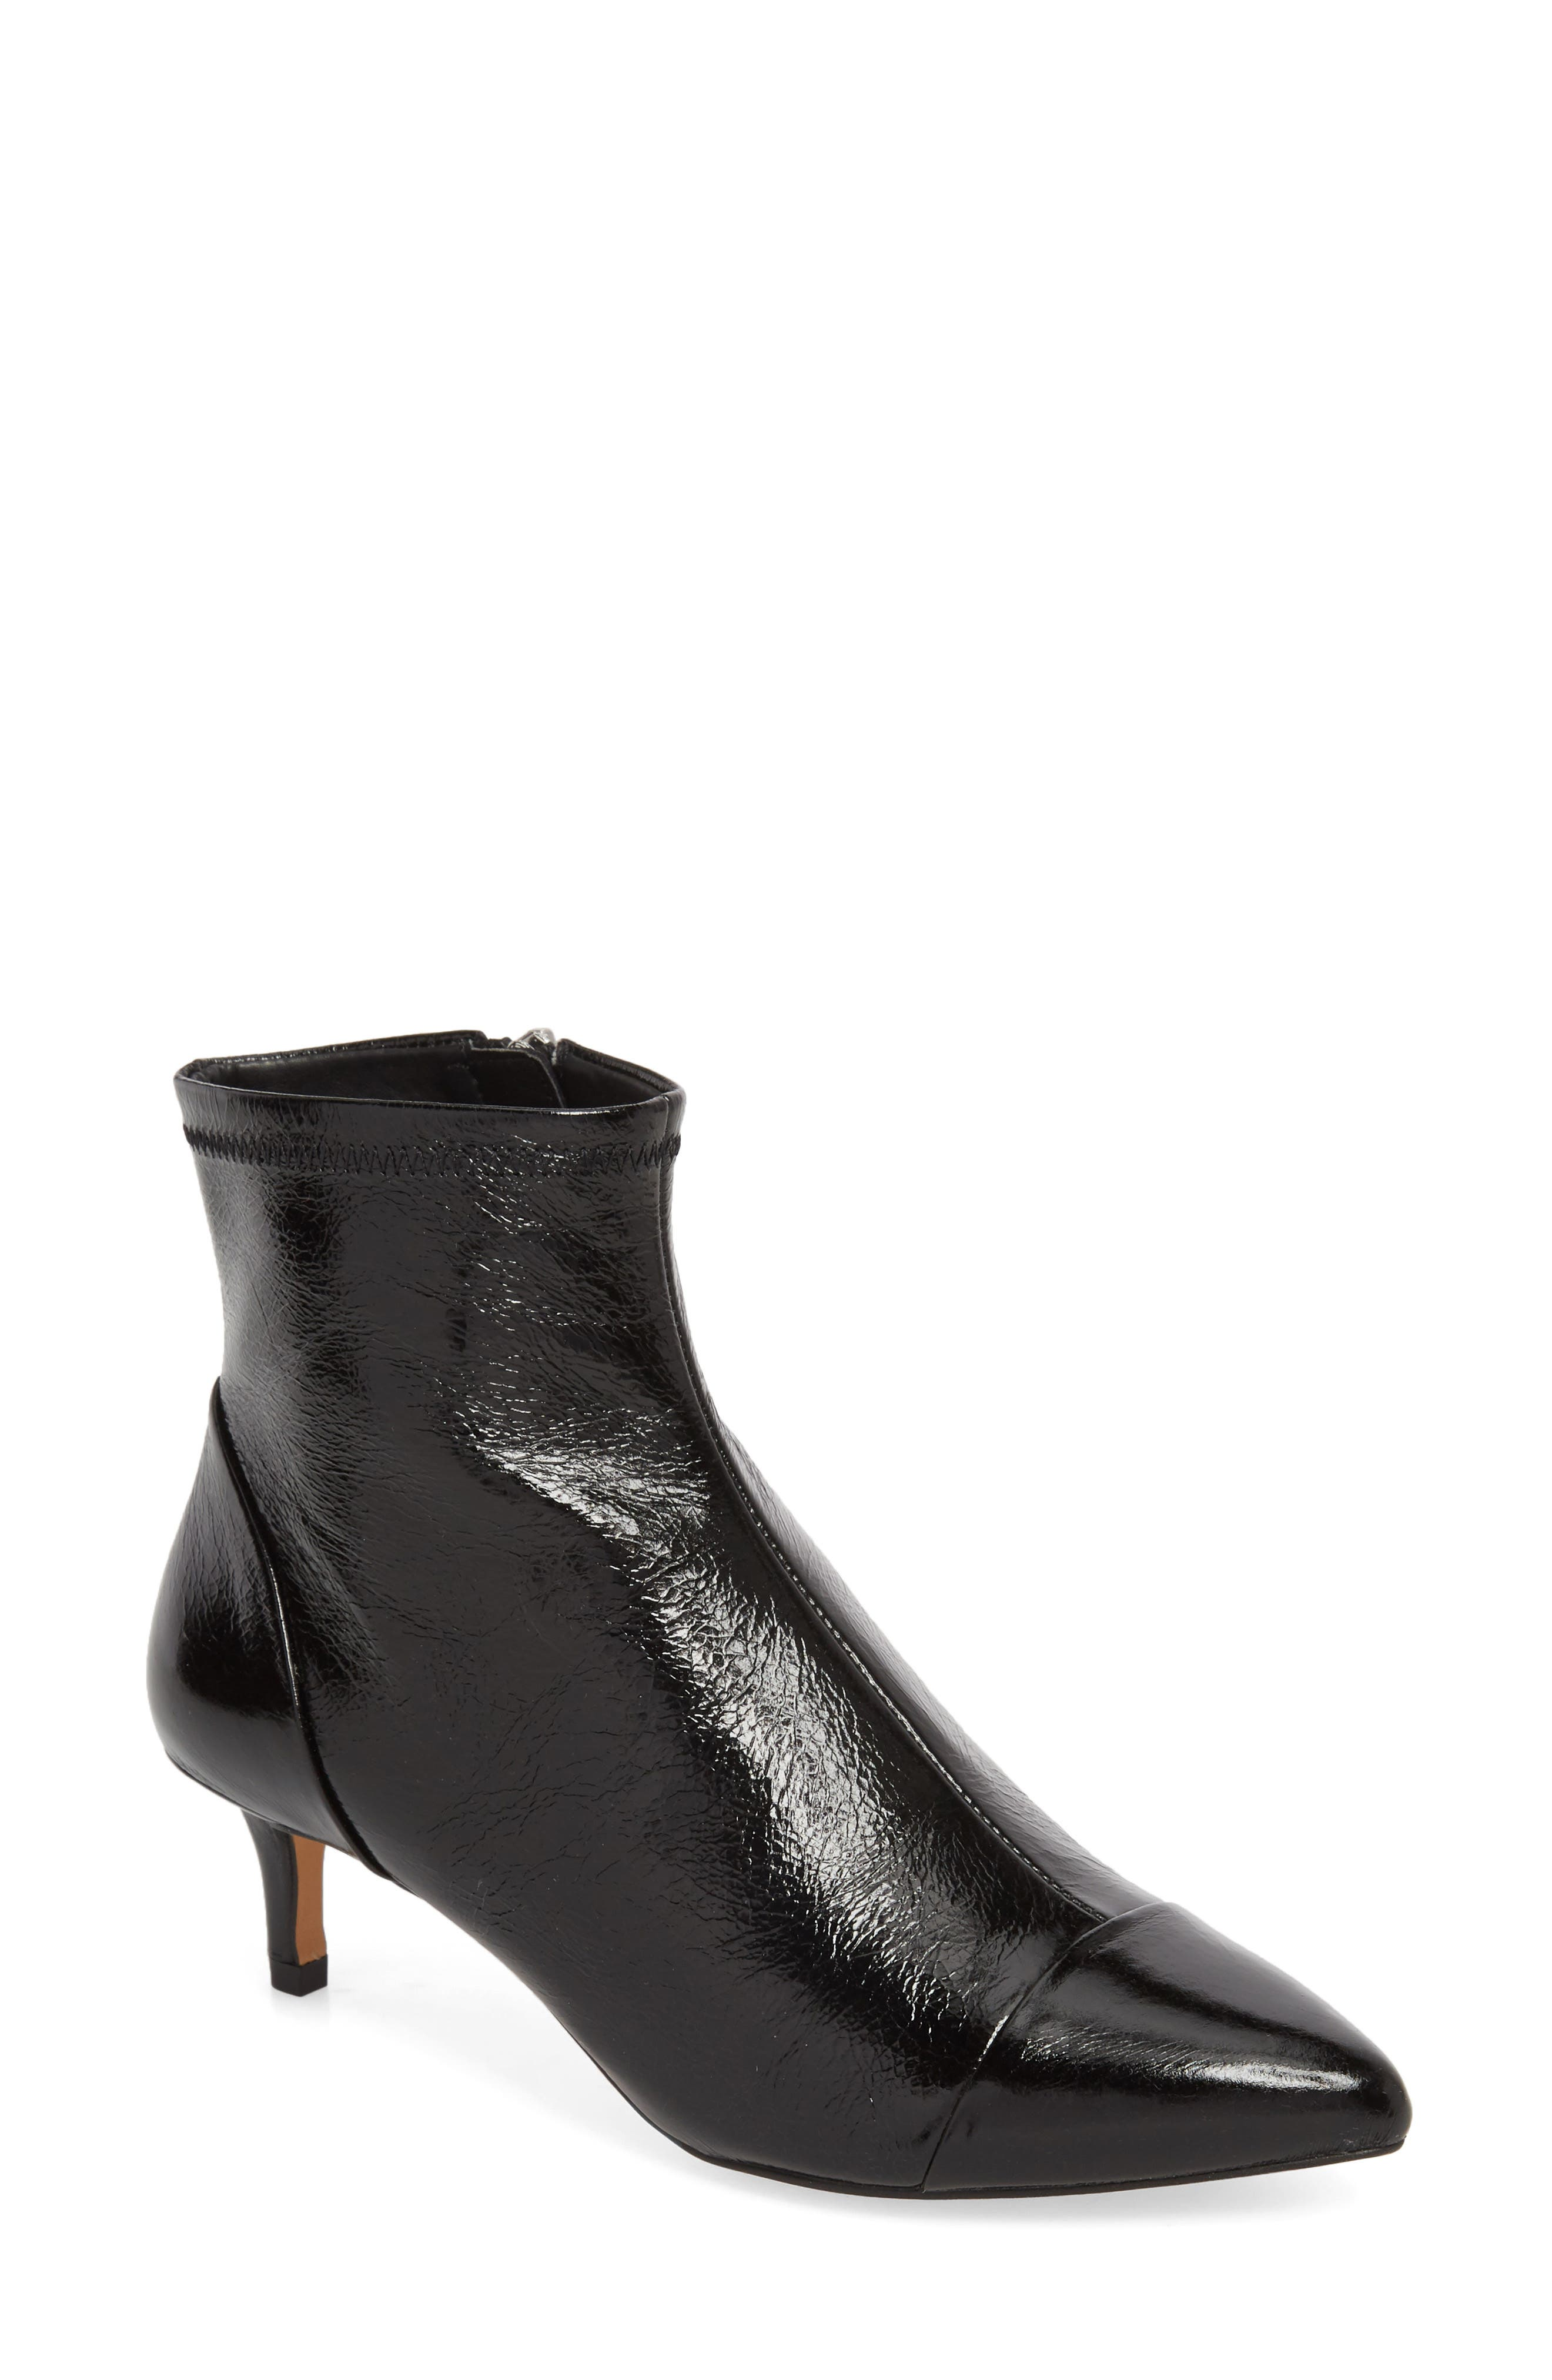 Siya Bootie,                             Main thumbnail 1, color,                             BLACK LEATHER